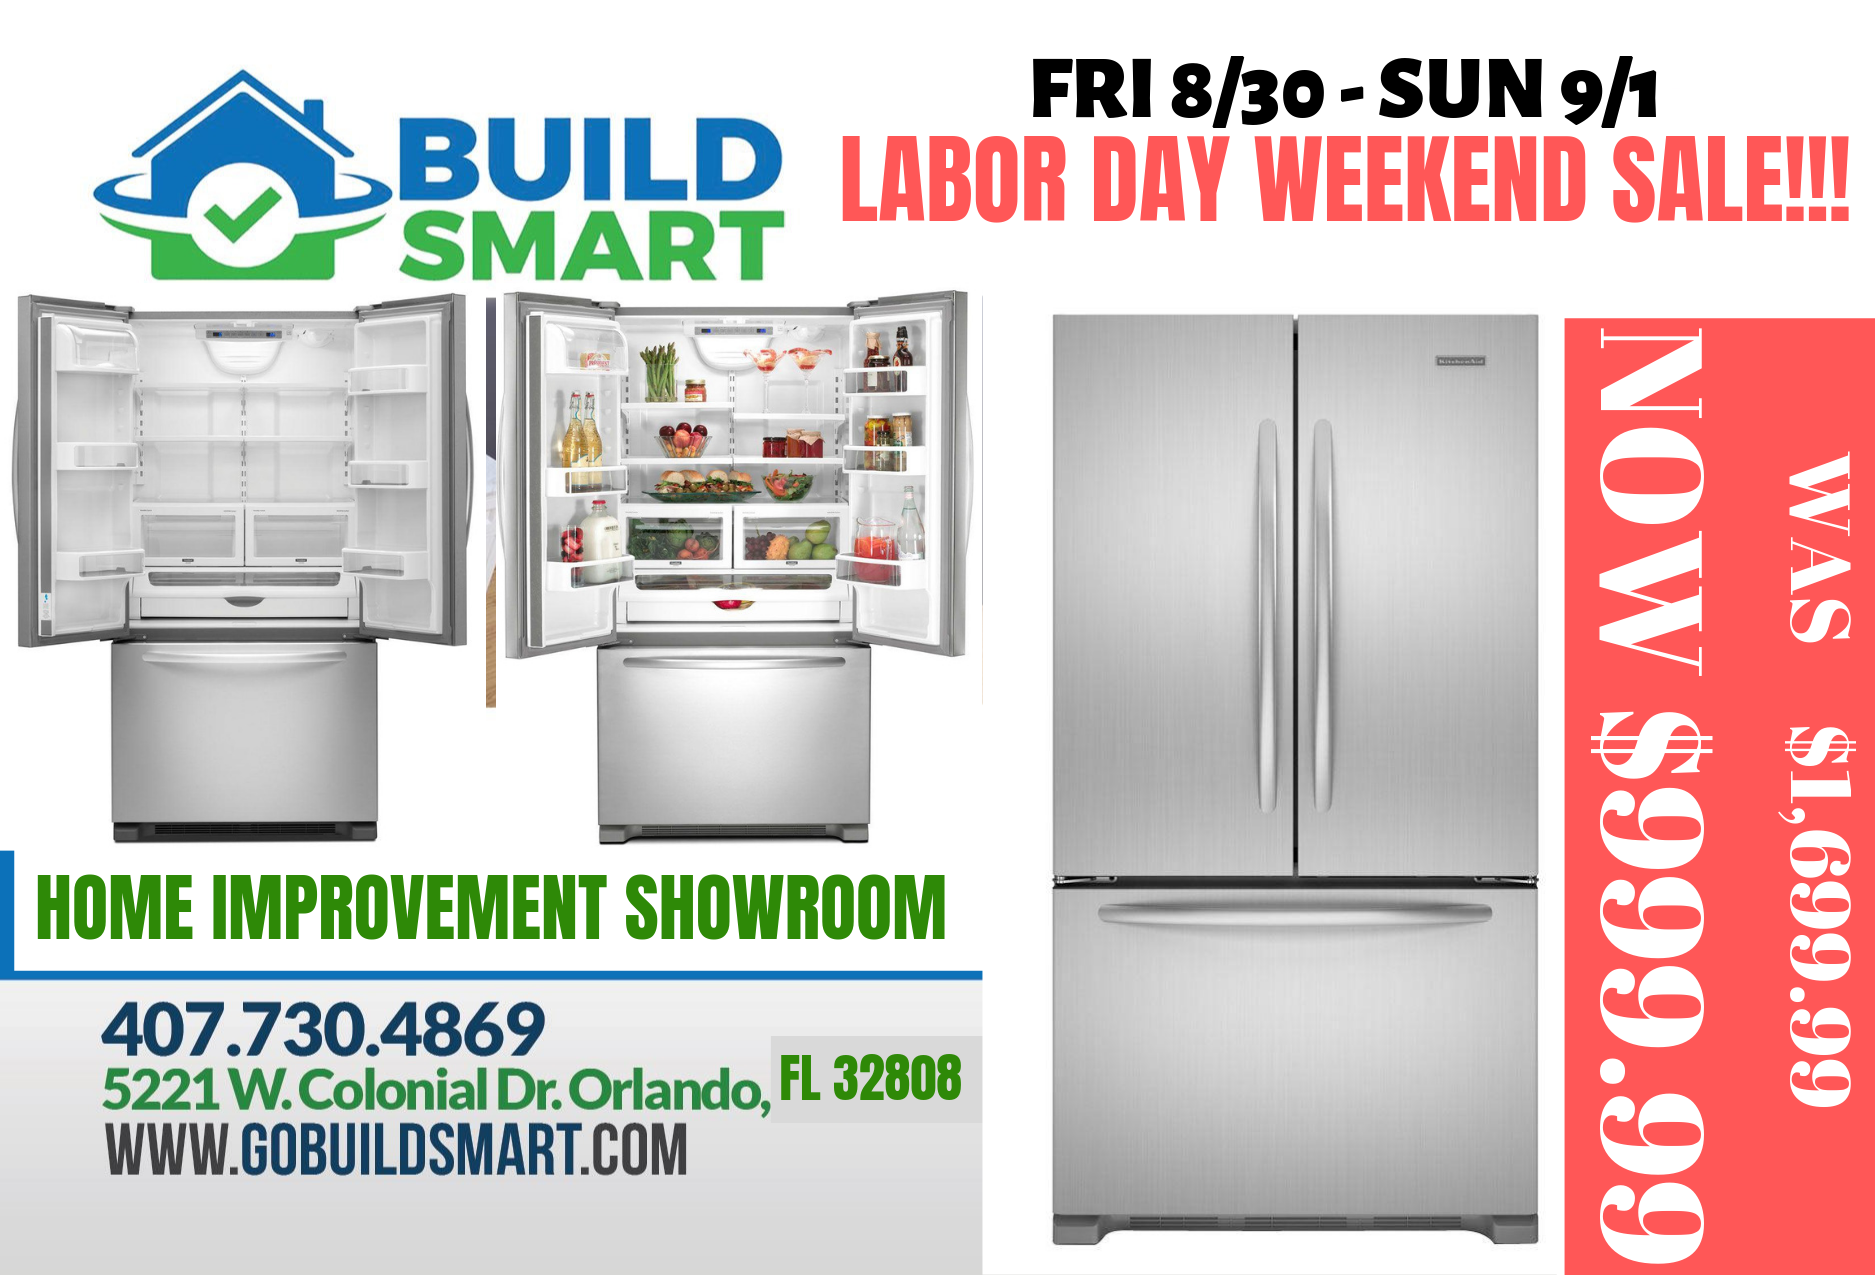 LABOR WEEKEND SALE – KITCHENAID REFRIGERATOR FOR $999